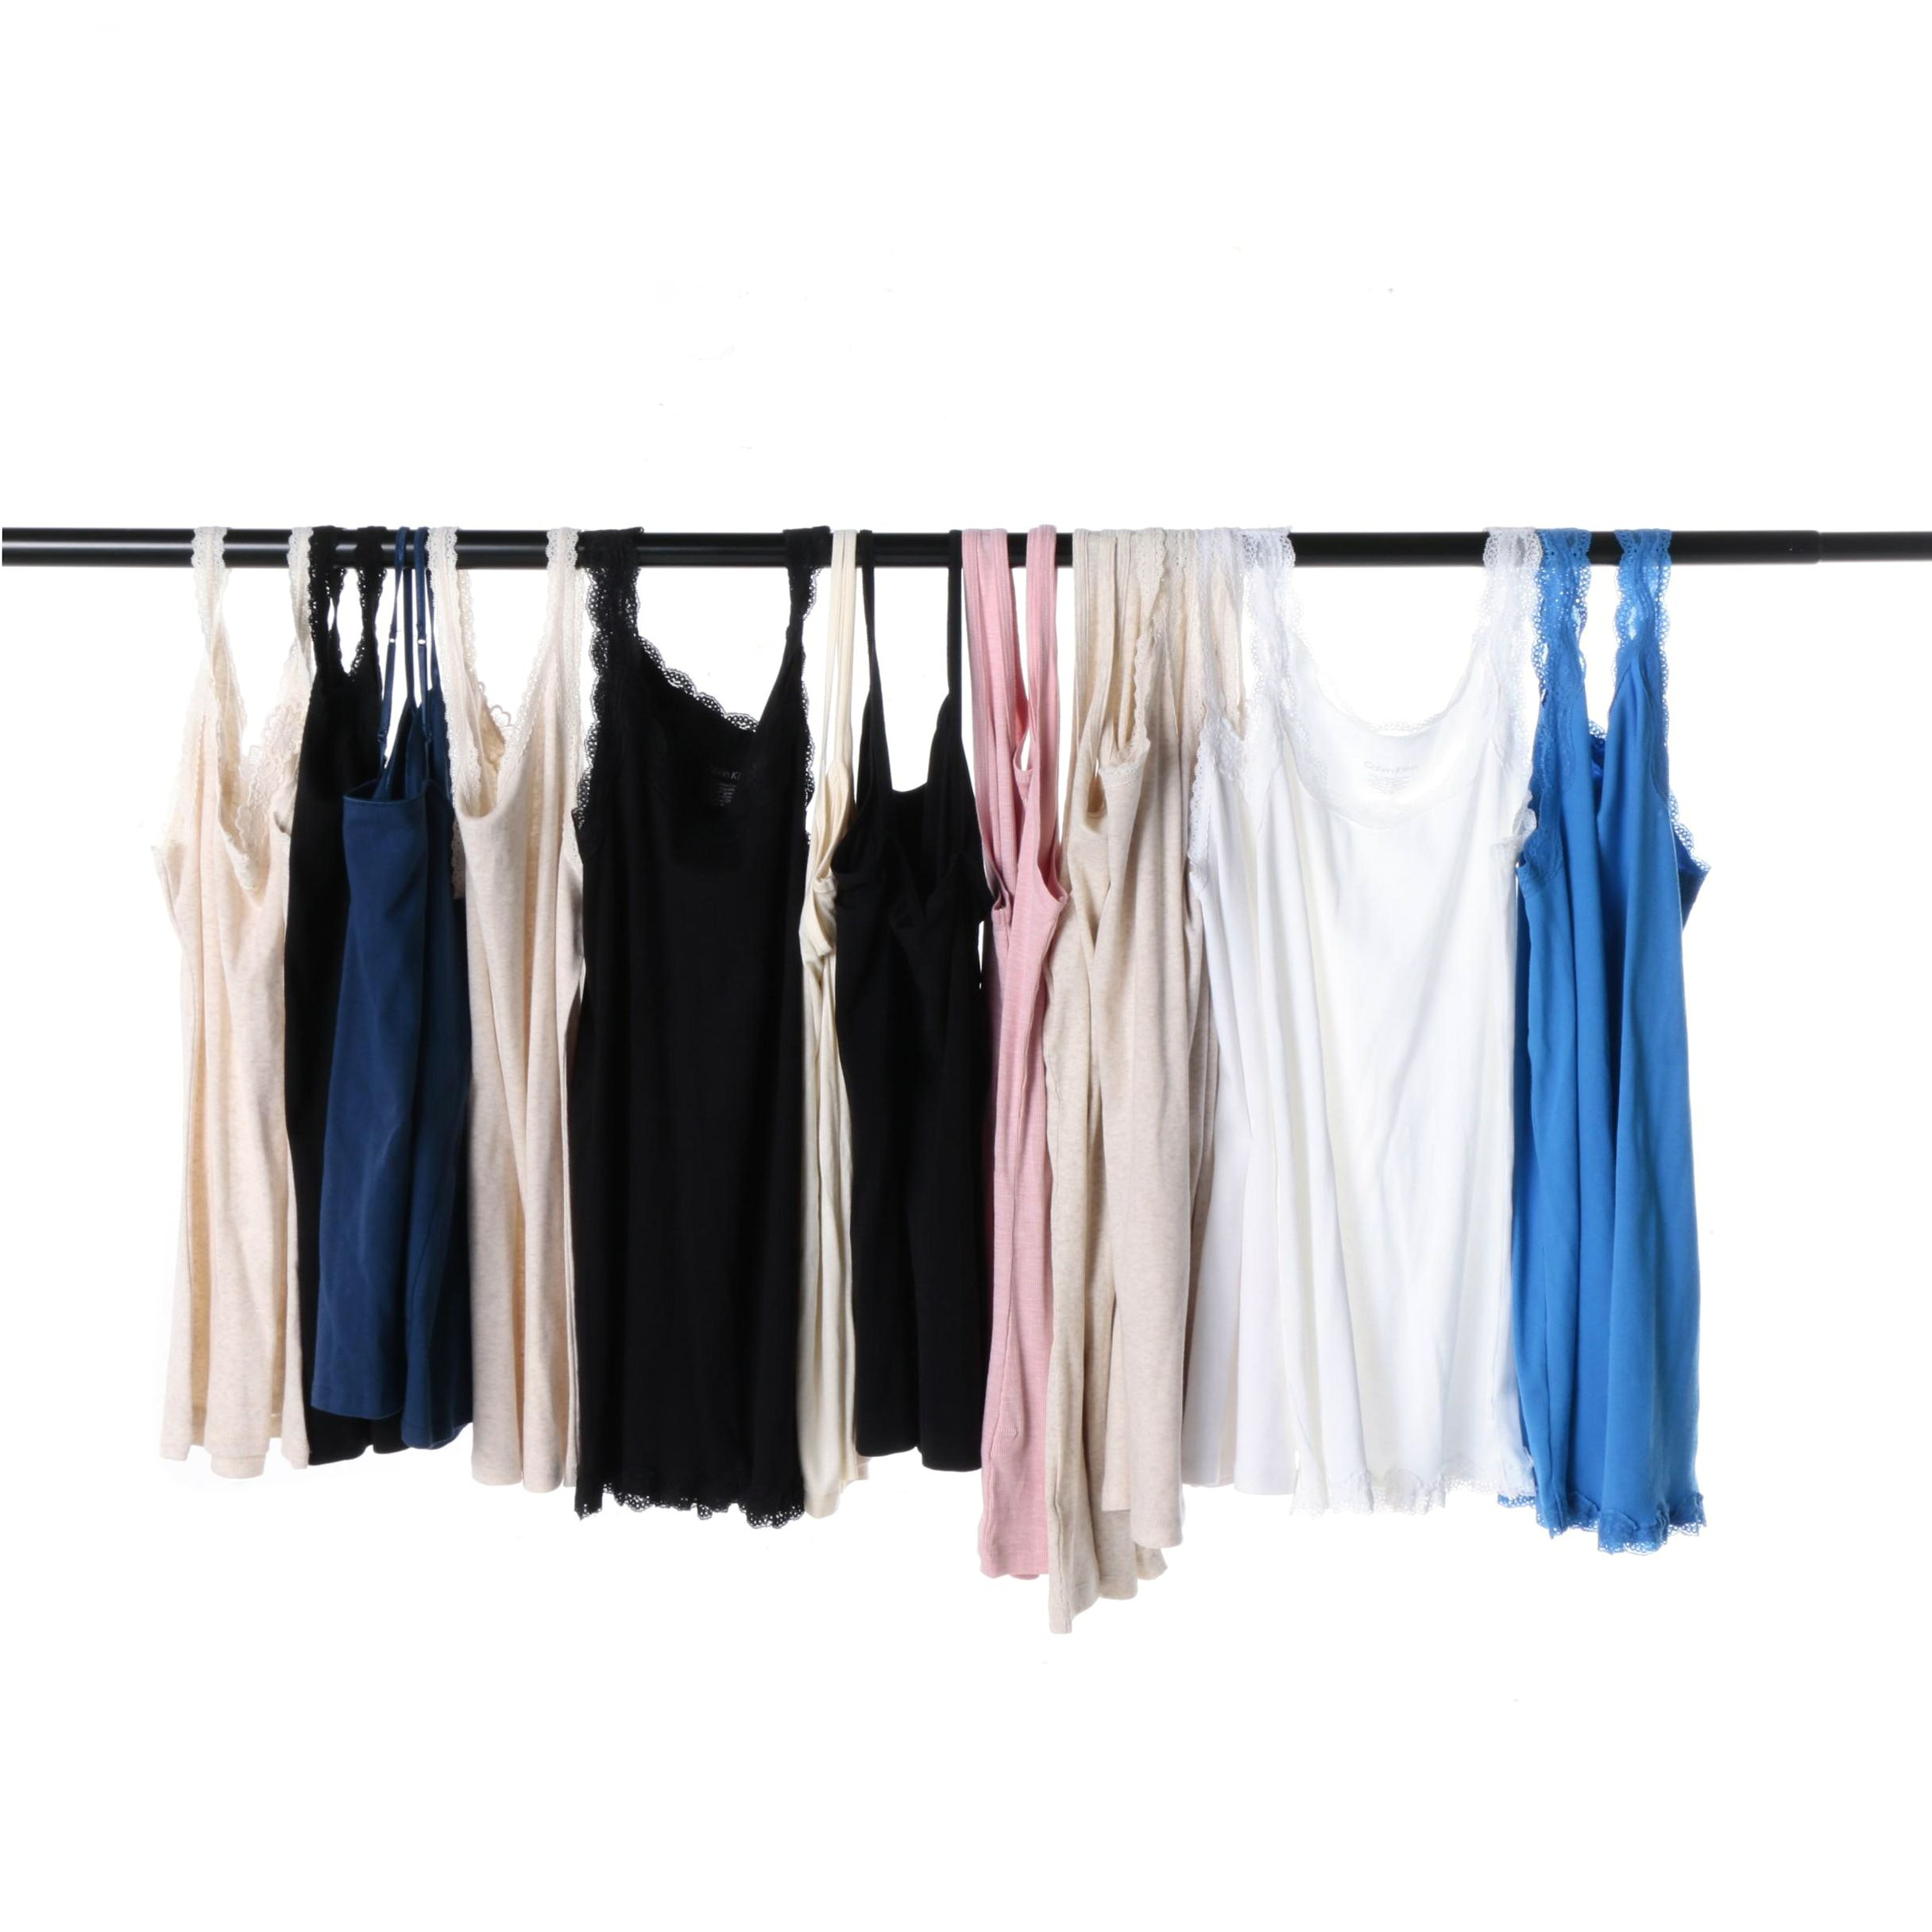 Women's Calvin Klein and Mossimo Tank Tops and Camisoles